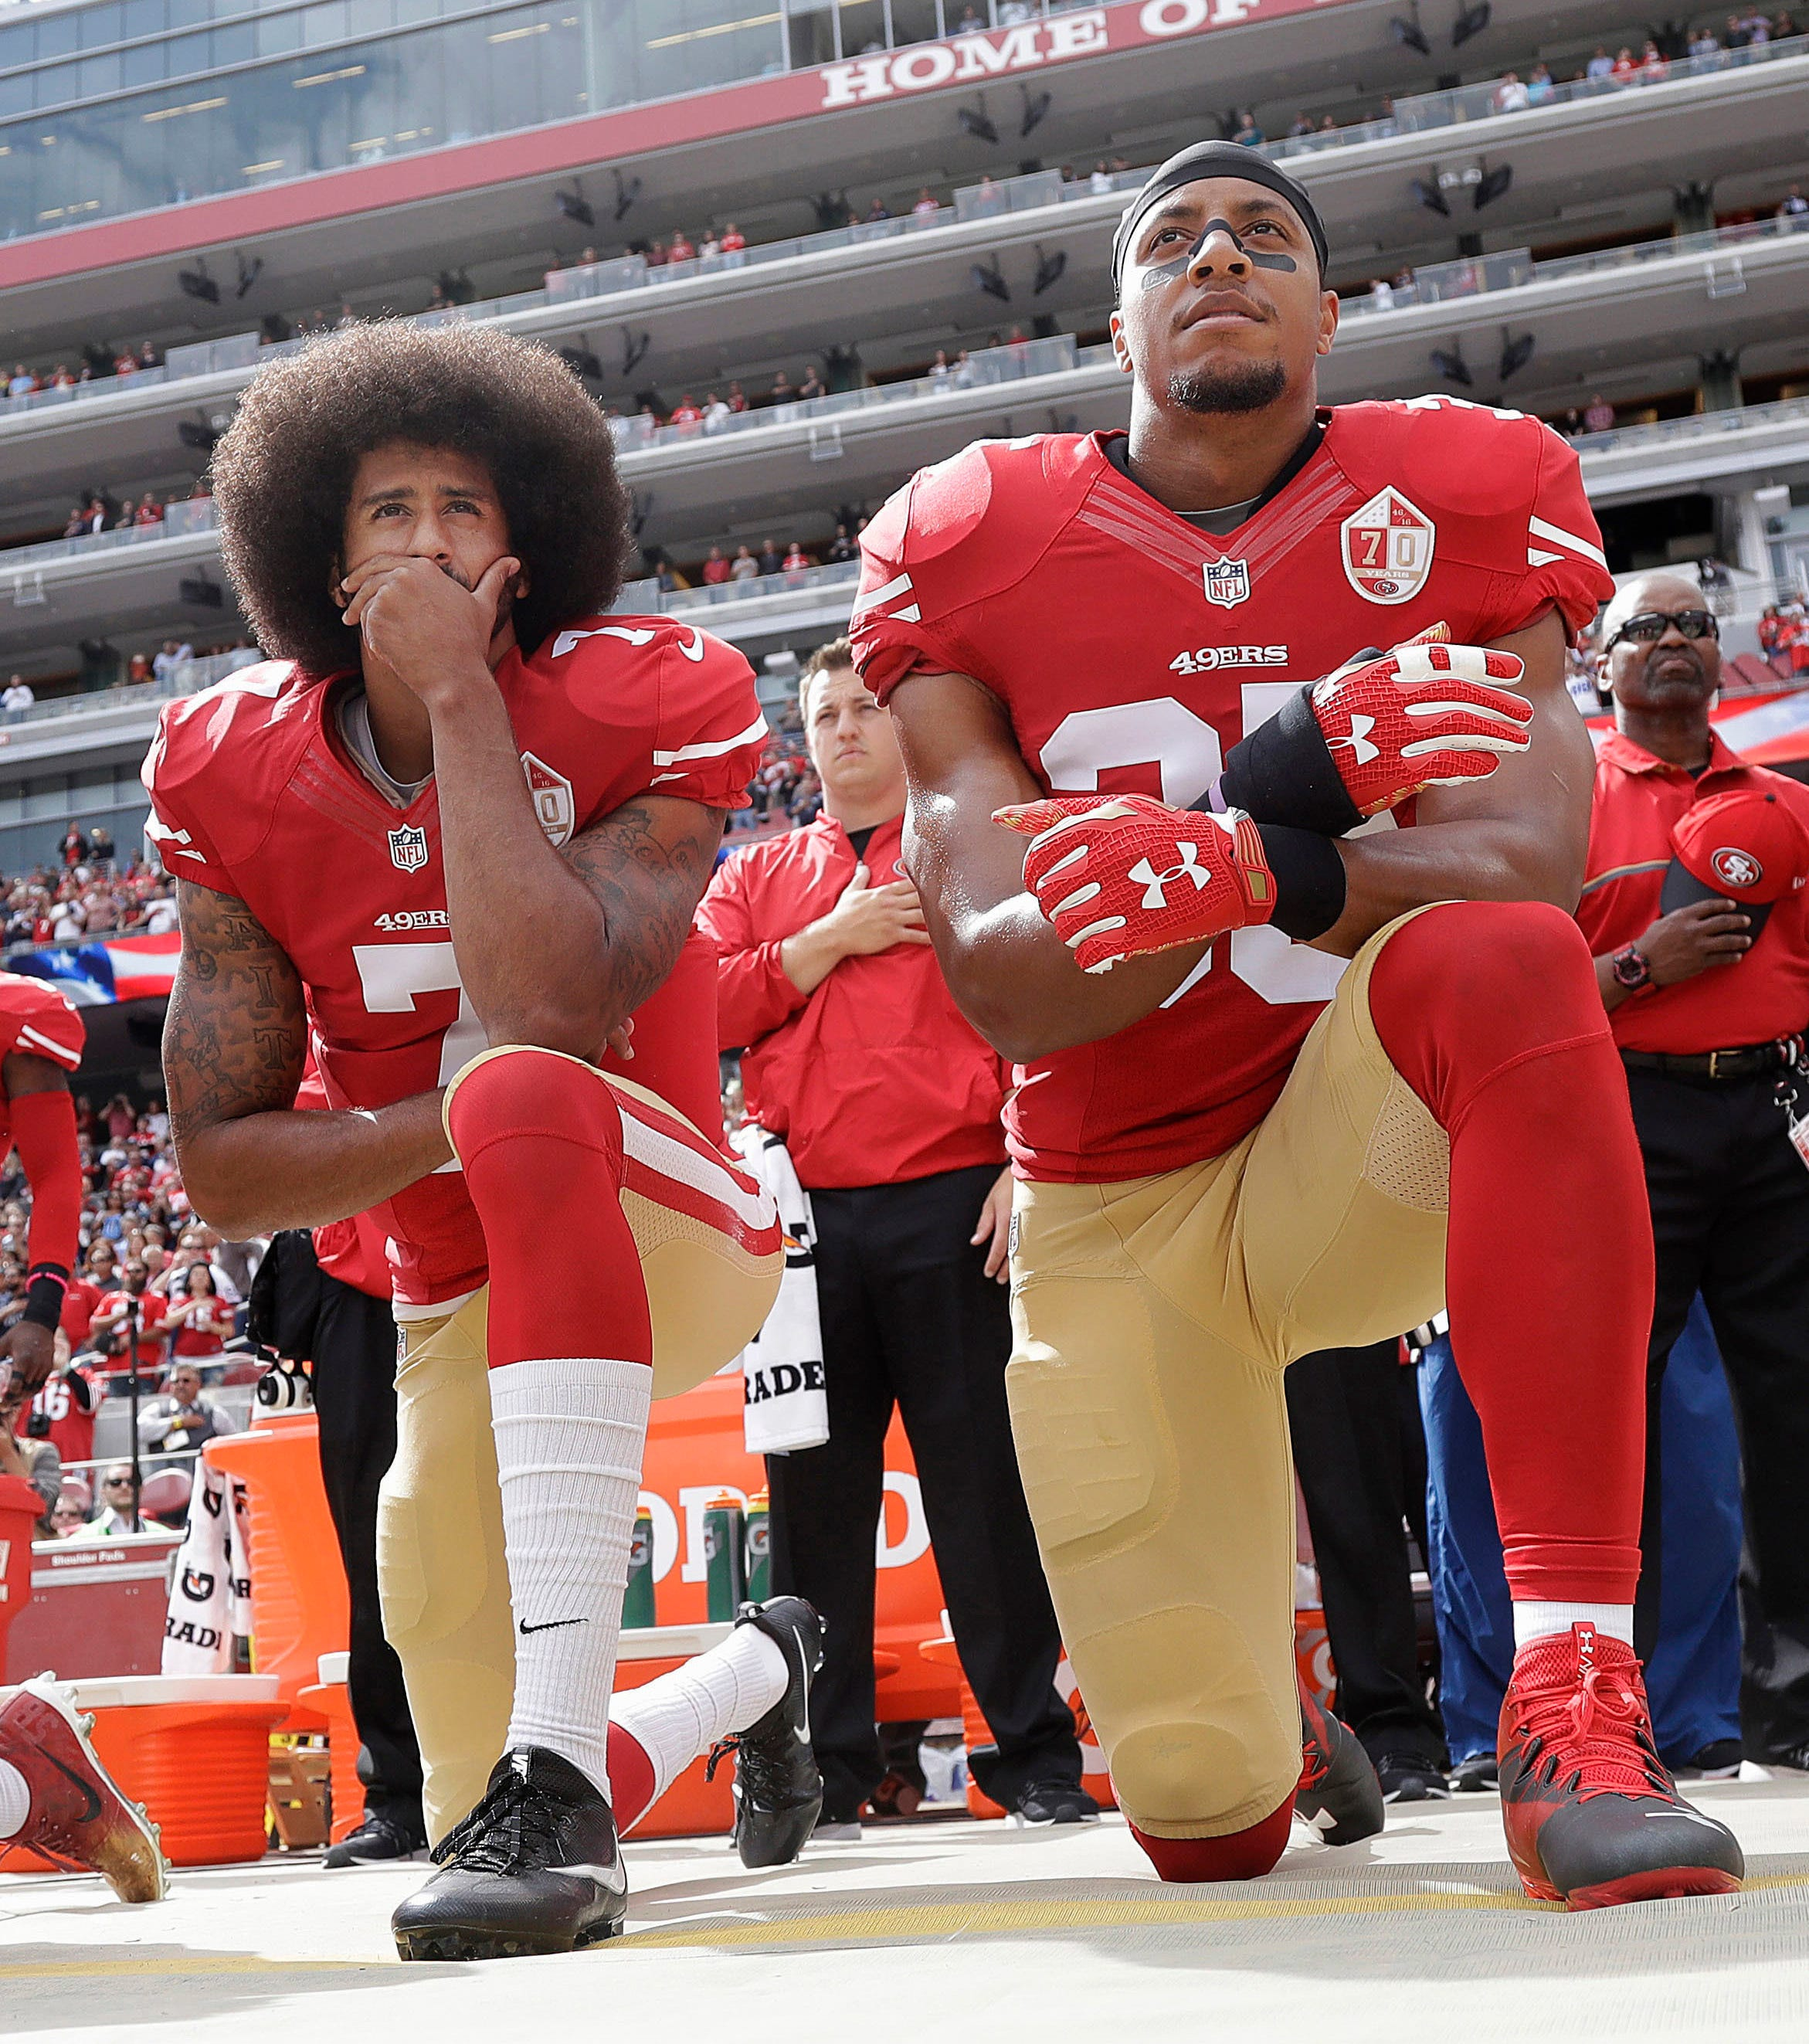 hot sale online 8dc50 31242 Does Eric Reid's signing show there's still a chance for Kaepernick in NFL?